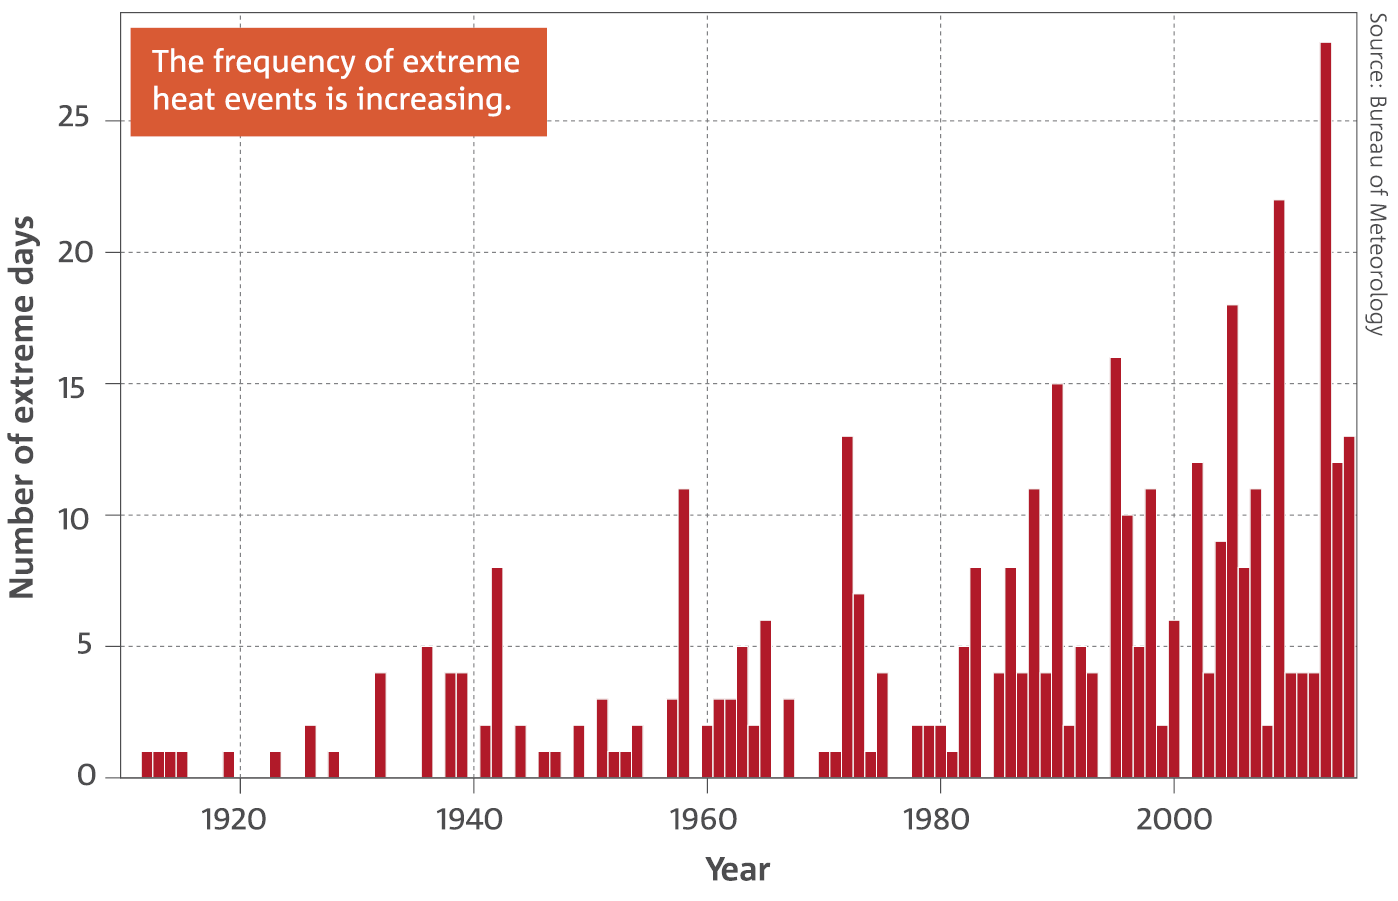 Bar chart: Number of days in each year where the Australian area-averaged daily mean temperature is extreme. The frequency of extreme heat events is increasing.